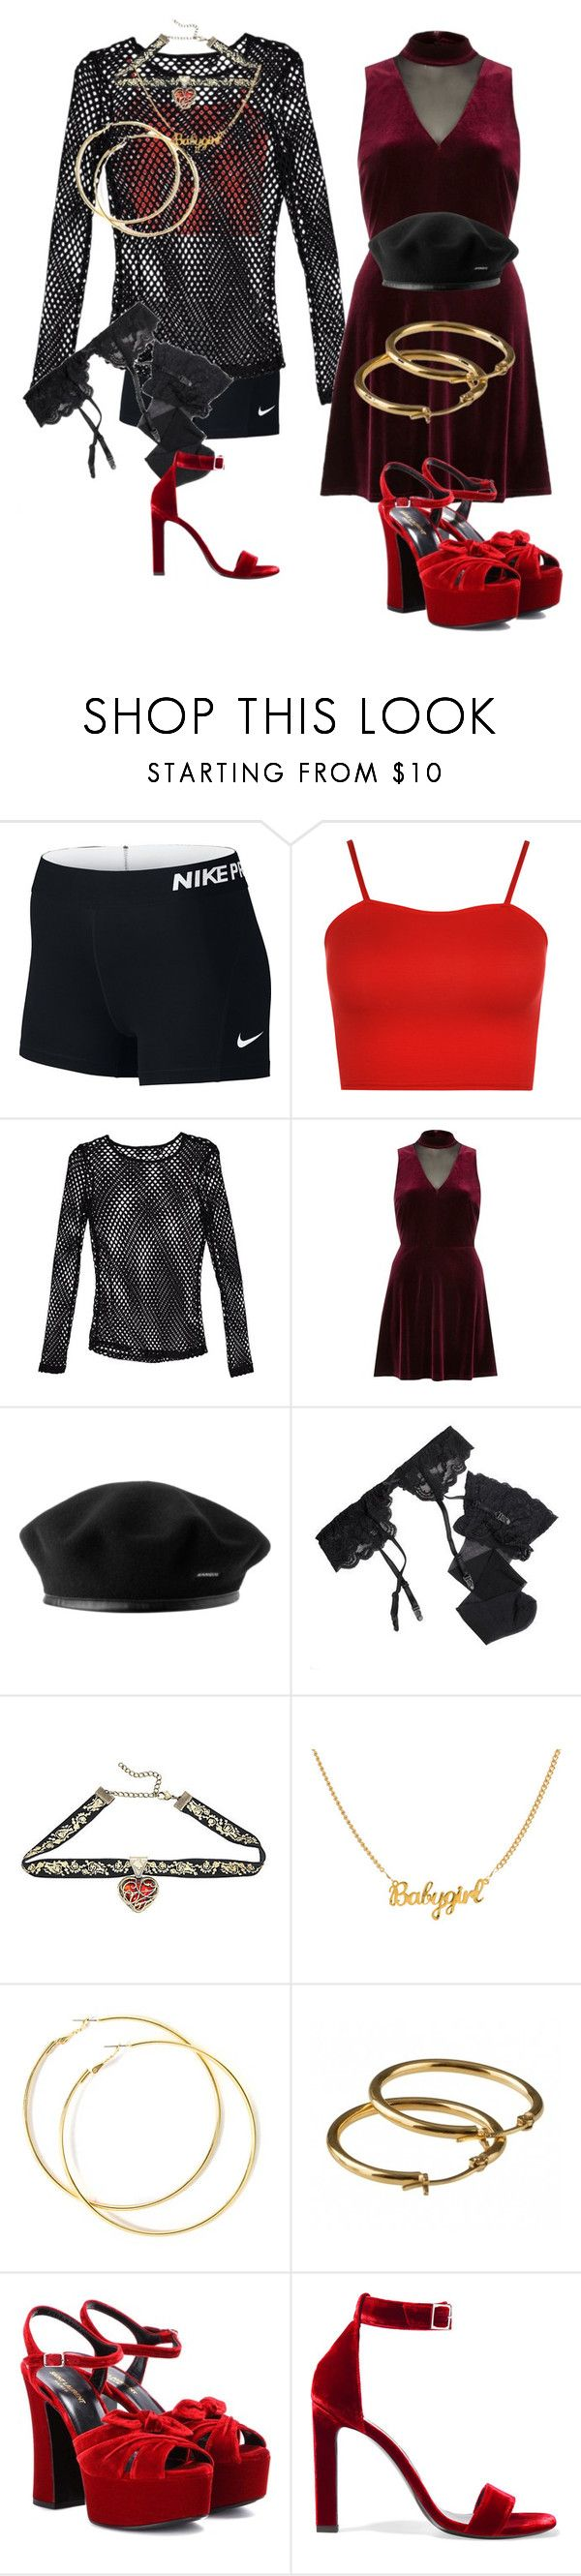 """""""Untitled #5805"""" by aurorazoejadefleurbiancasarah ❤ liked on Polyvore featuring NIKE, WearAll, Nasty Gal, River Island, Reger by Janet Reger, Disney and Yves Saint Laurent"""